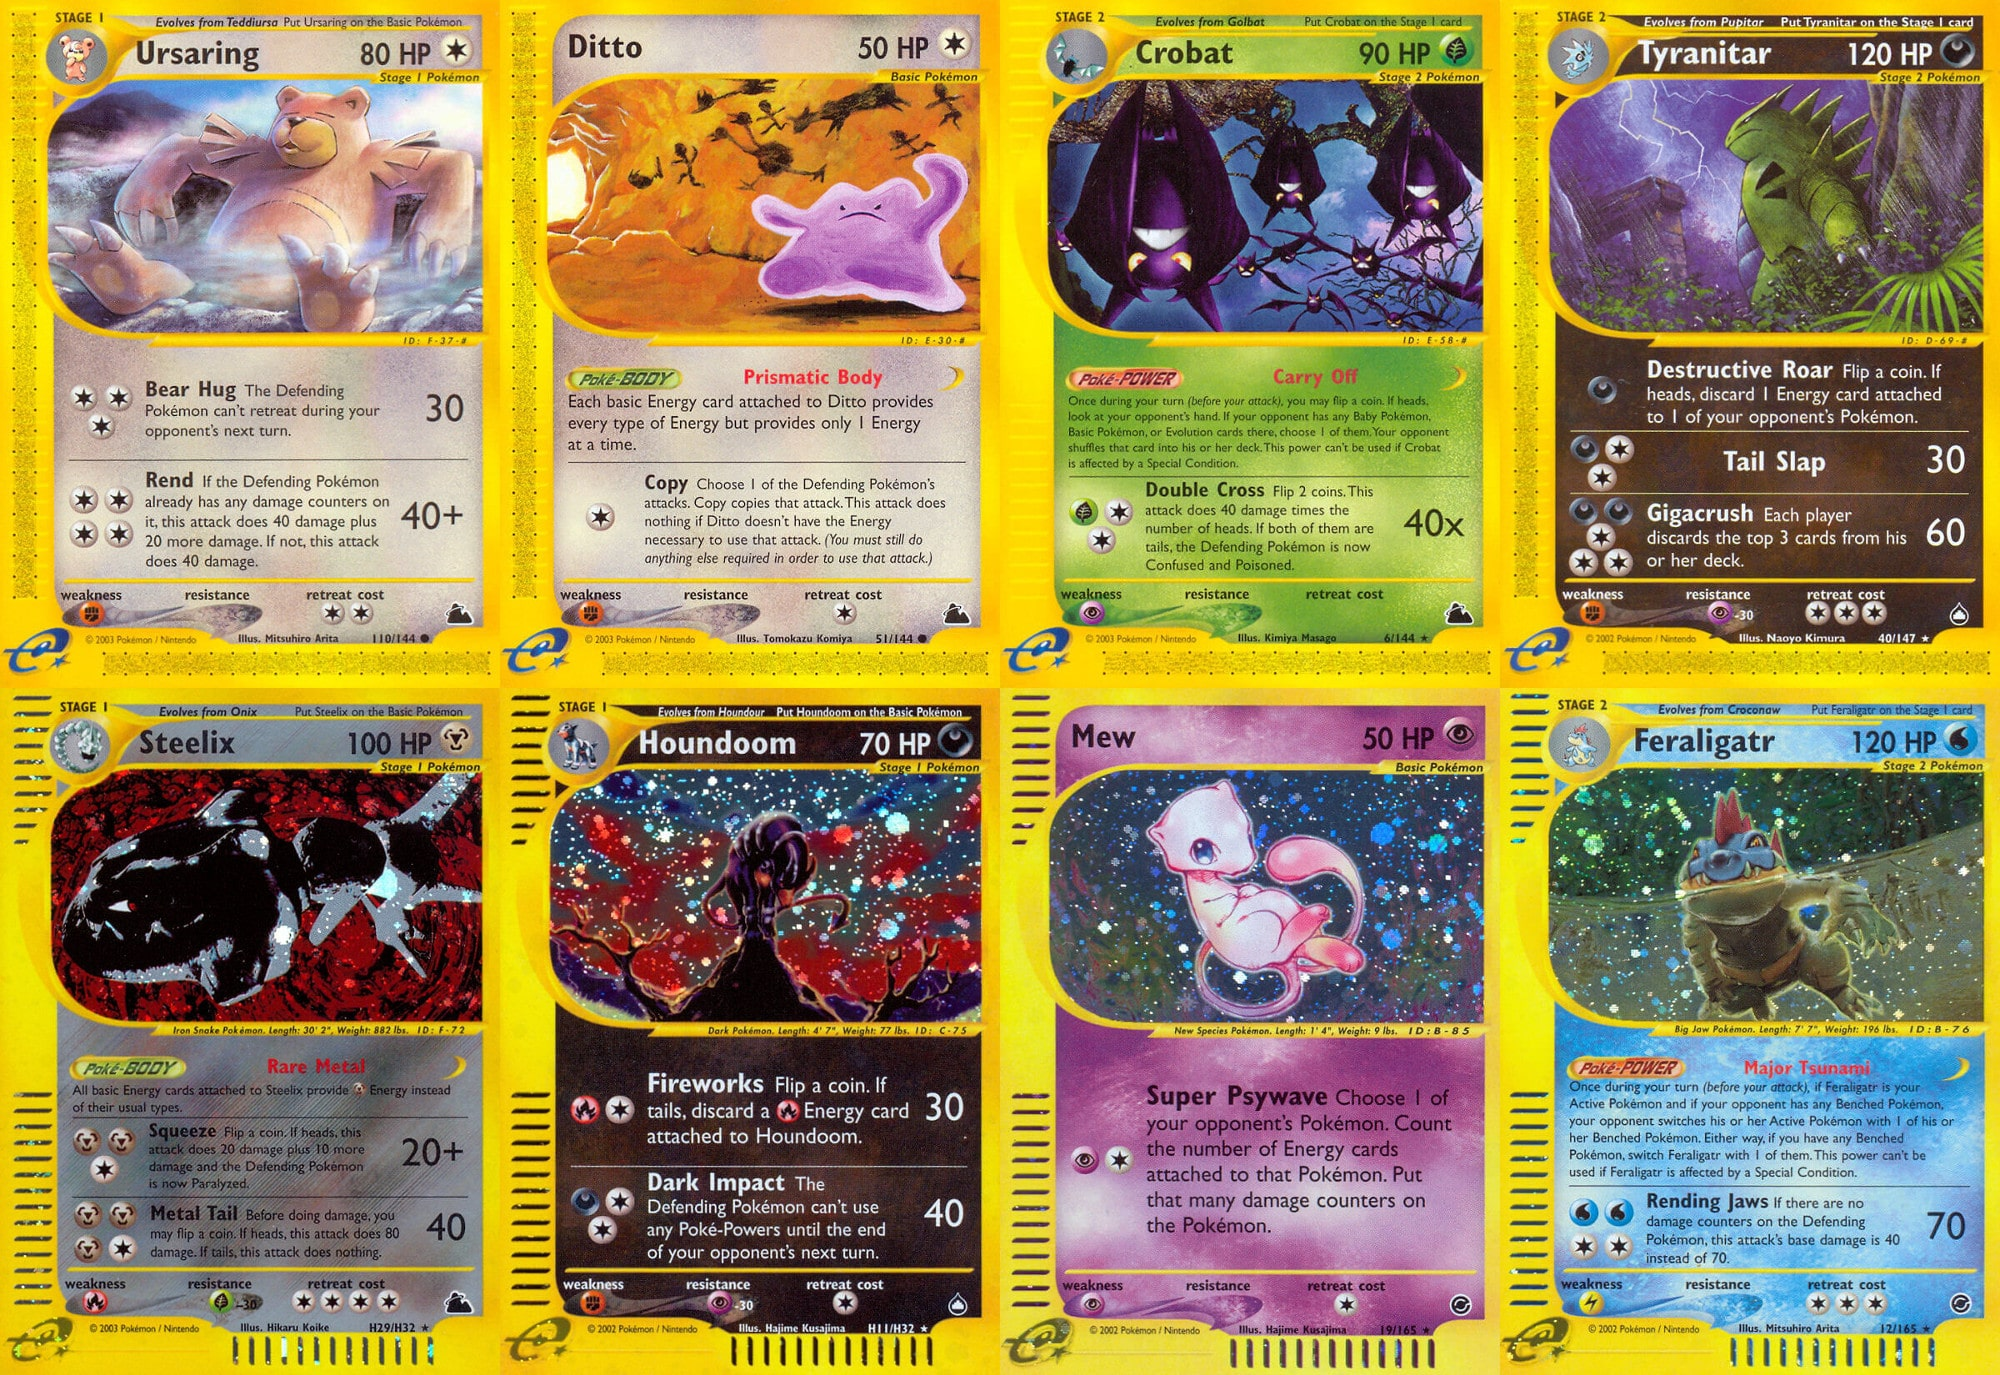 Scans of cards from the e-Reader era of Pokémon history